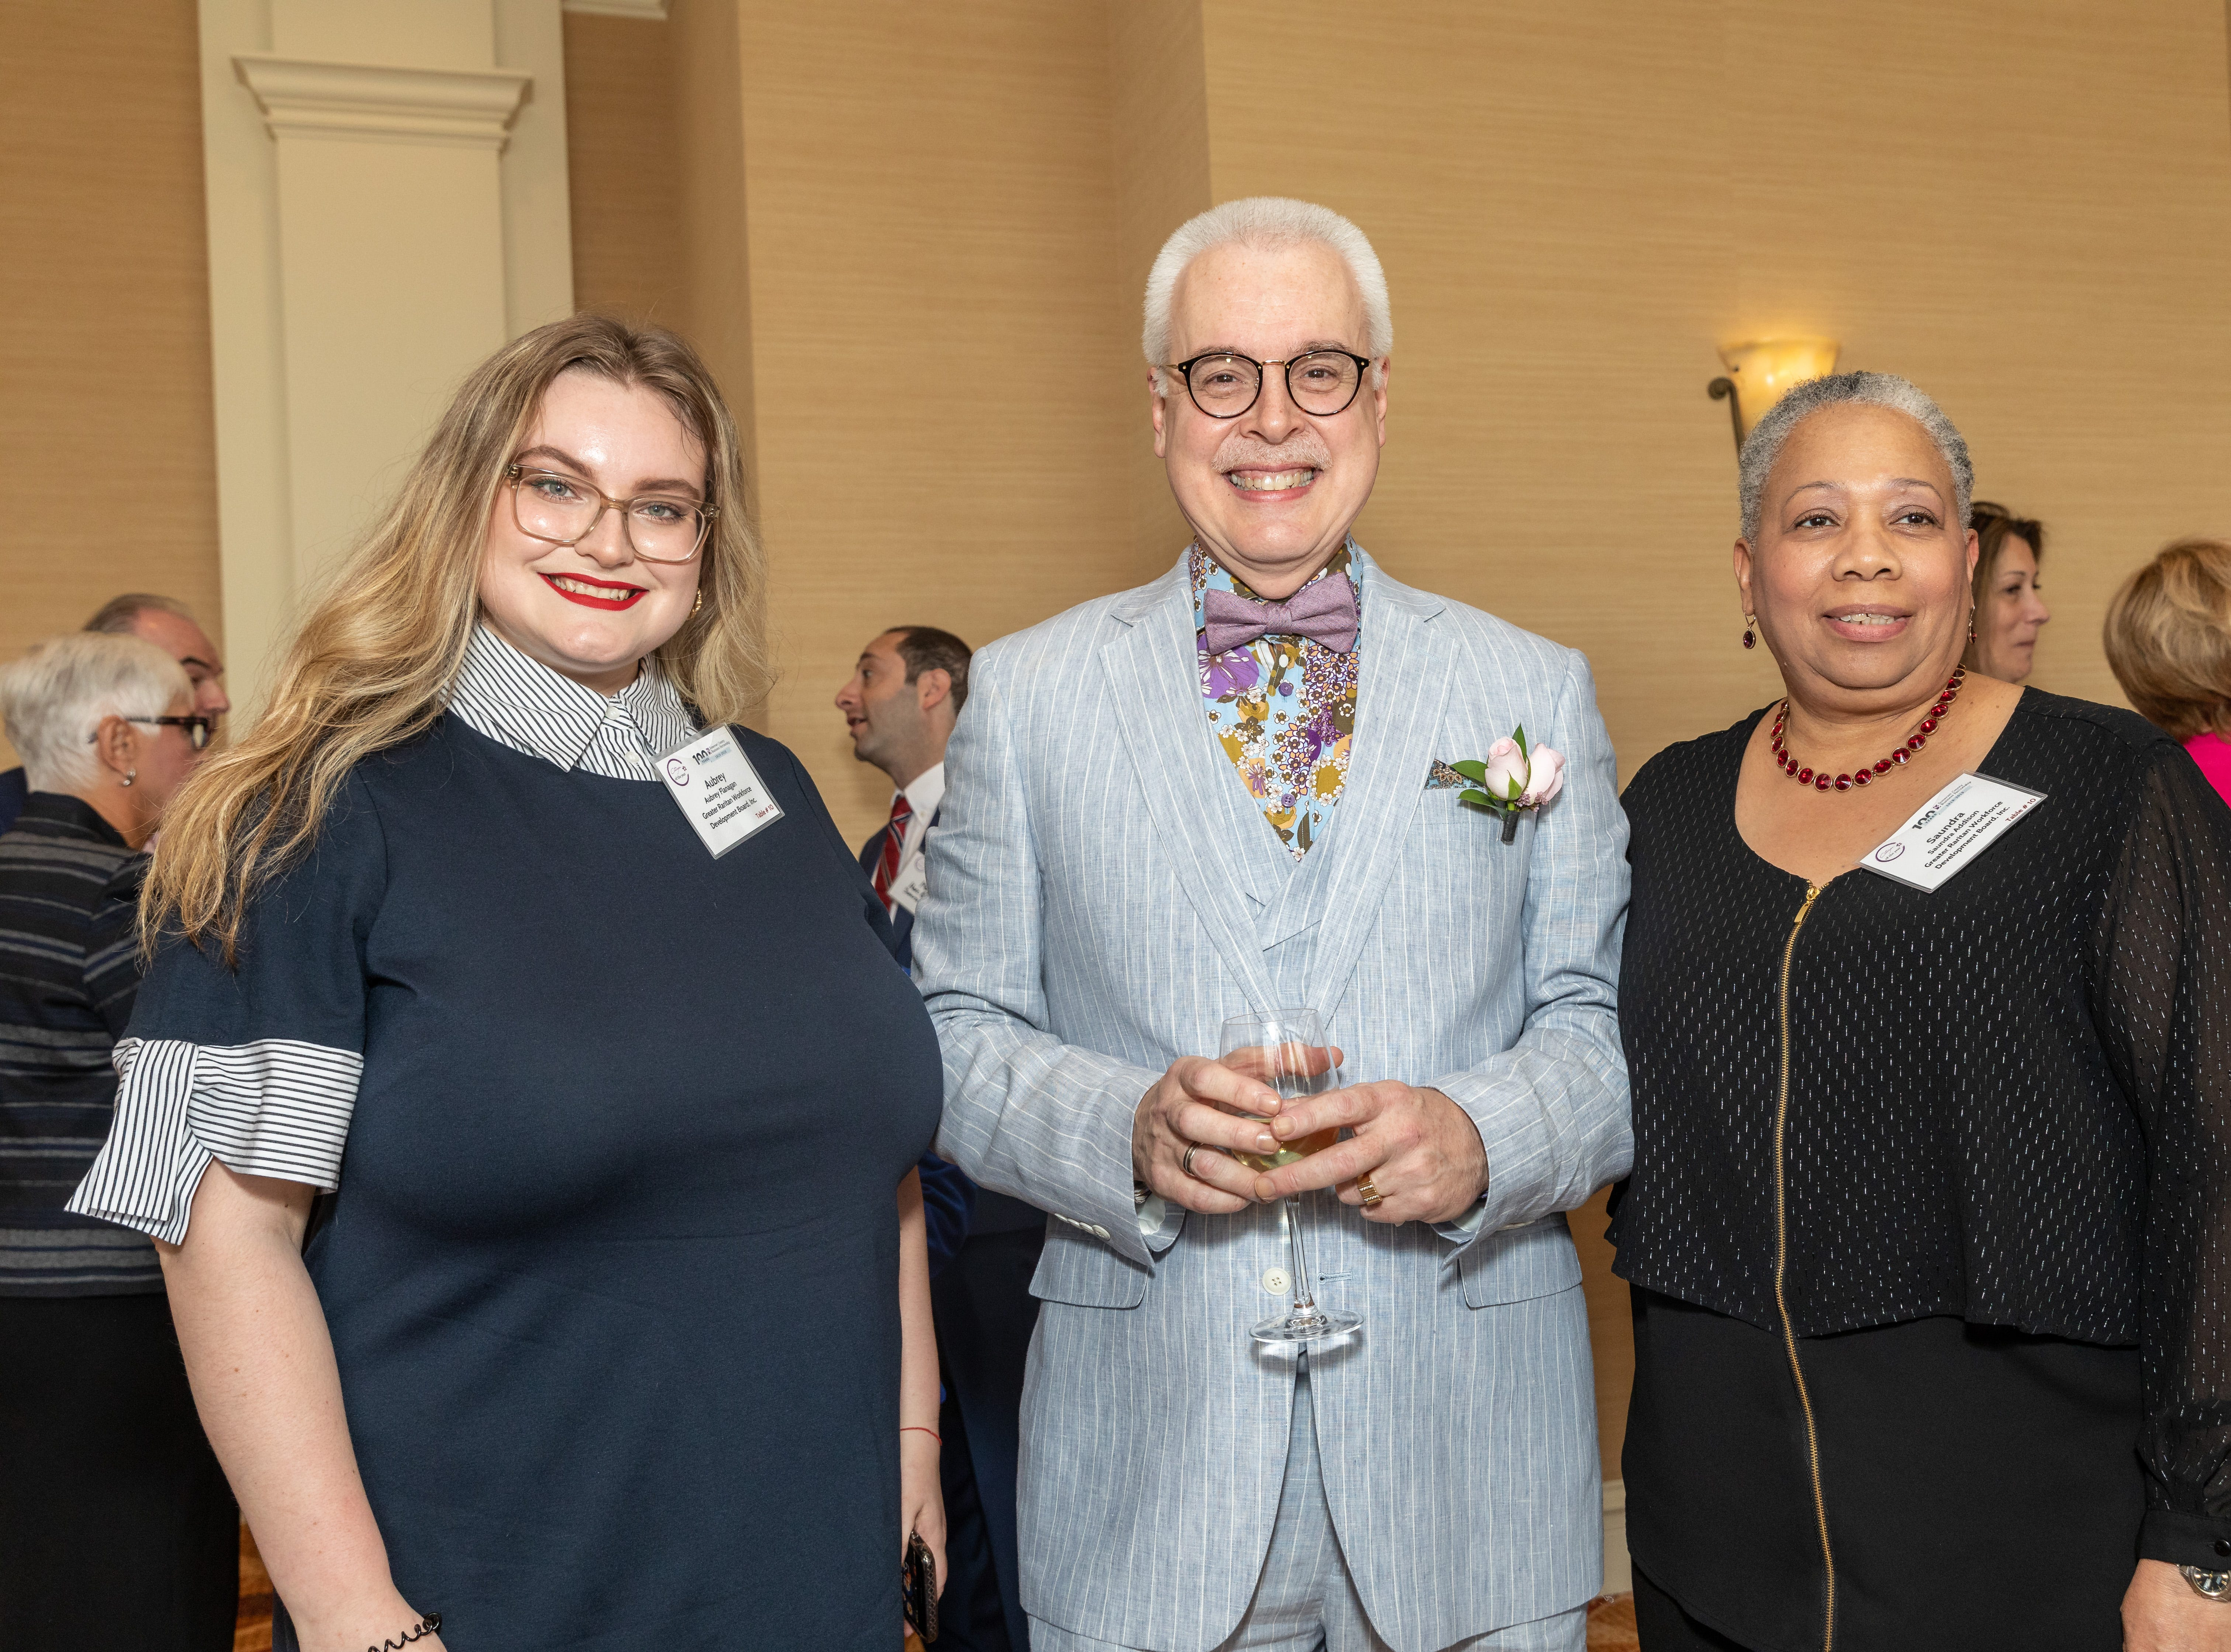 Former editor of the Courier News, Home News Tribune and MyCentralJersey.com Paul Grzella was named as the Somerset County 2019 Citizen of the Year by the Somerset County Business Partnership on Thursday, May 2.